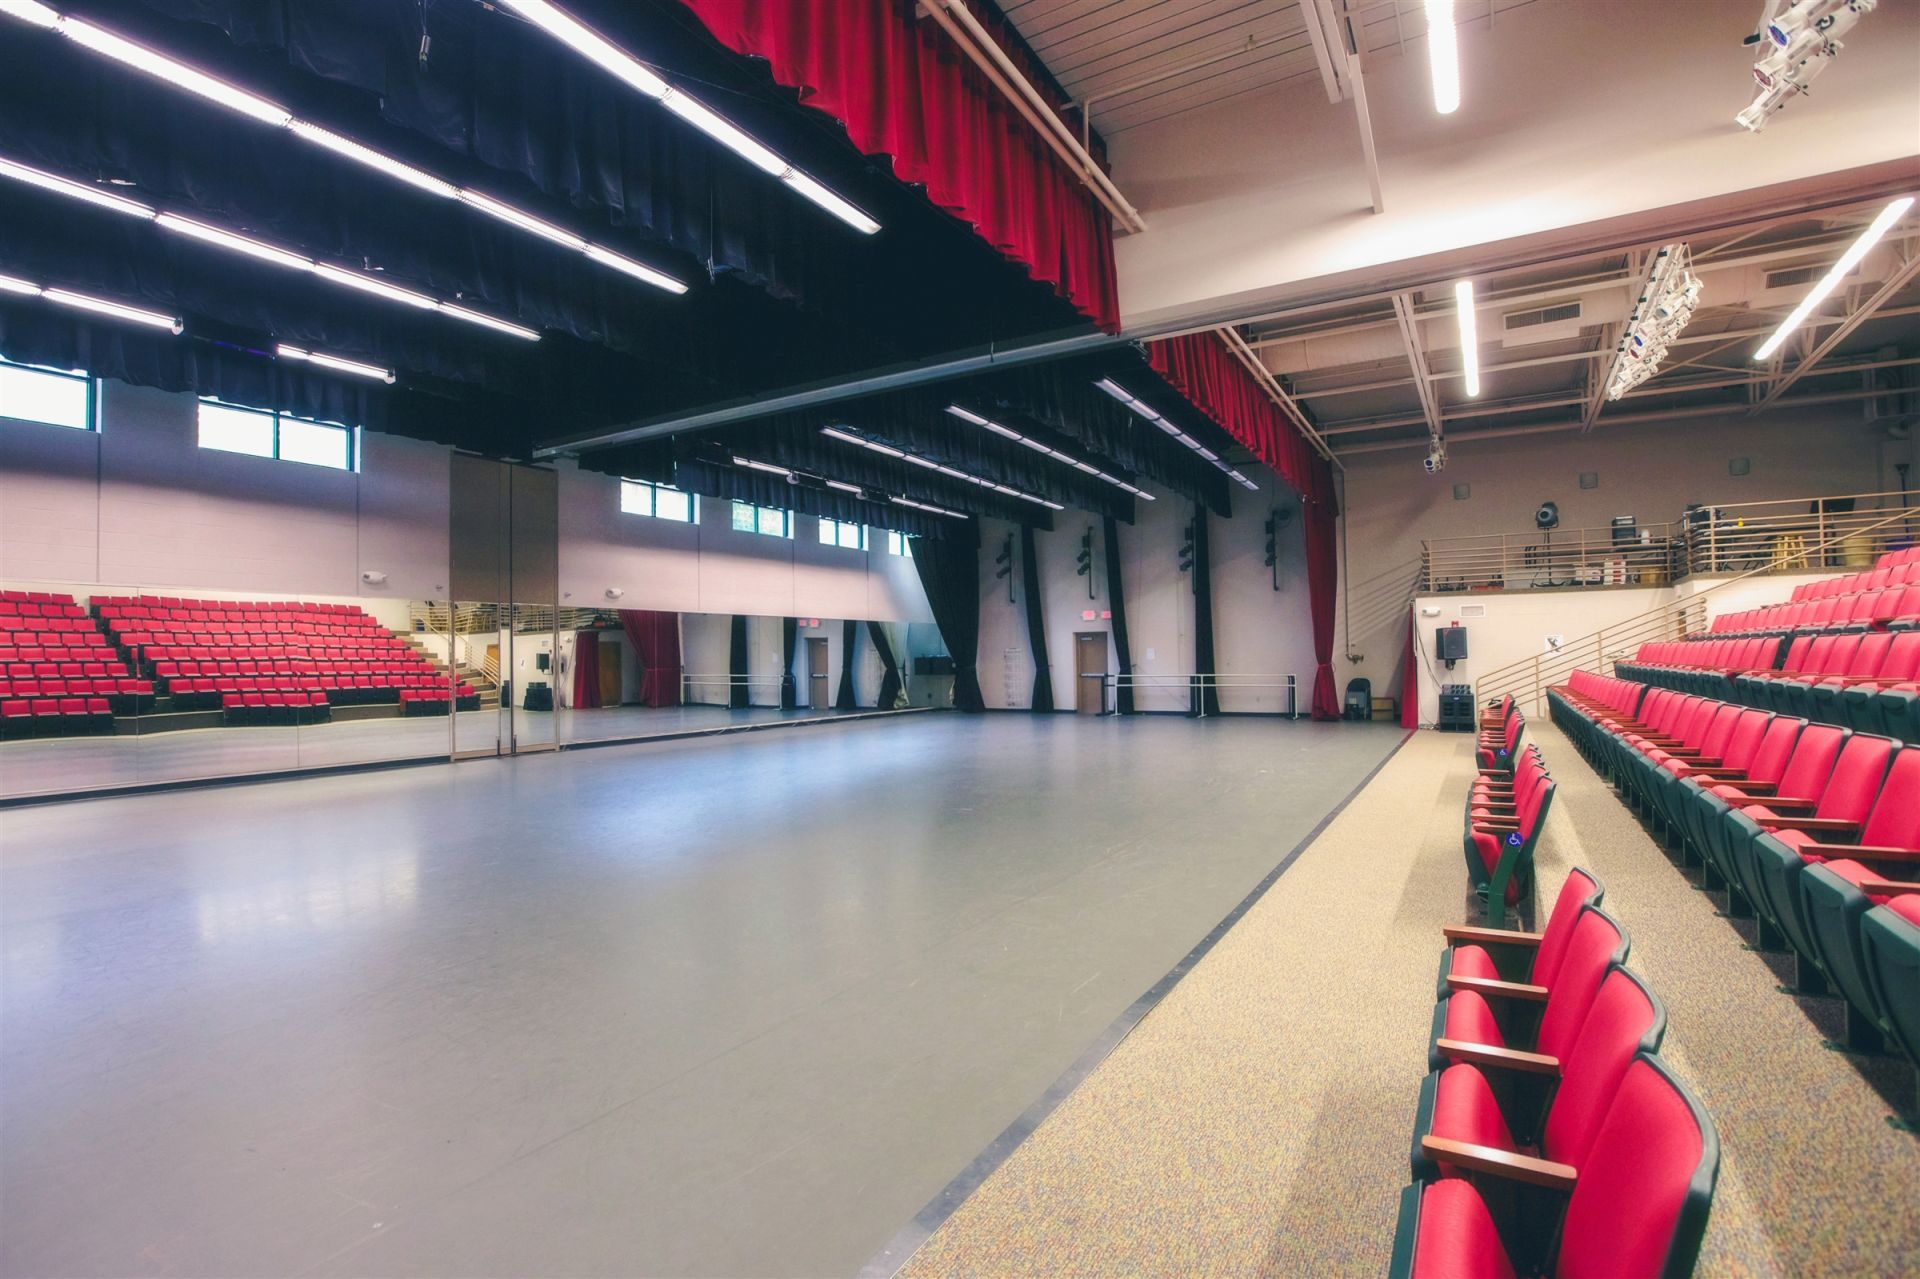 This 9,600 square foot space is home to dance and theatre activities throughout the summer. A magnificent space, with state of the art lighting & sound and a retractable wall to divide the space as needed, the Grier Performing Art building is also fitted with a Harlequin sprung floor. With auditorium seating for 280, this building easily accommodates the parents and relatives who come to end of camp performances.